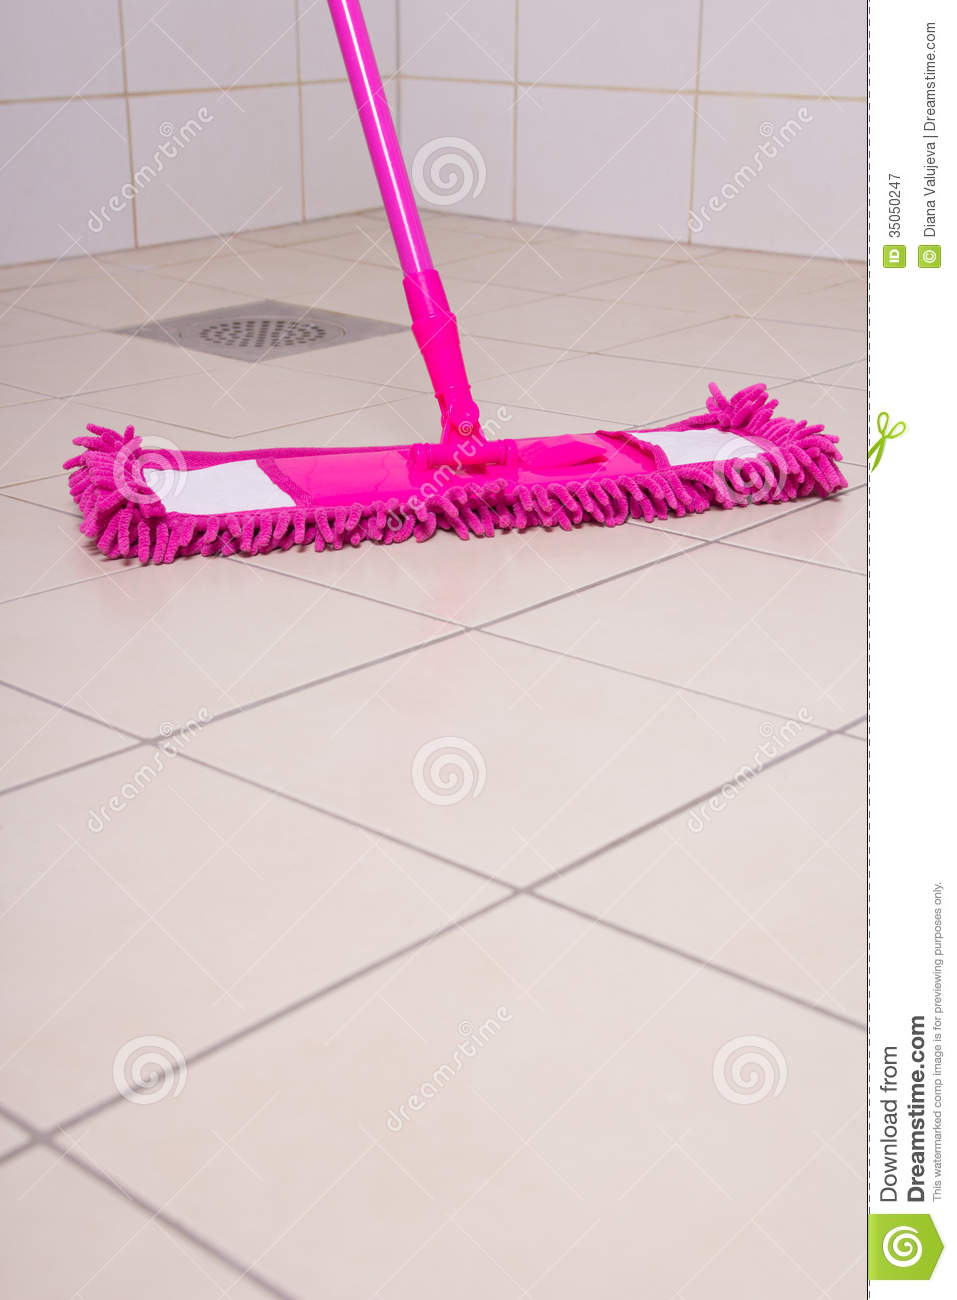 Washing Of Tile Floors By Pink Mop Stock Image Image